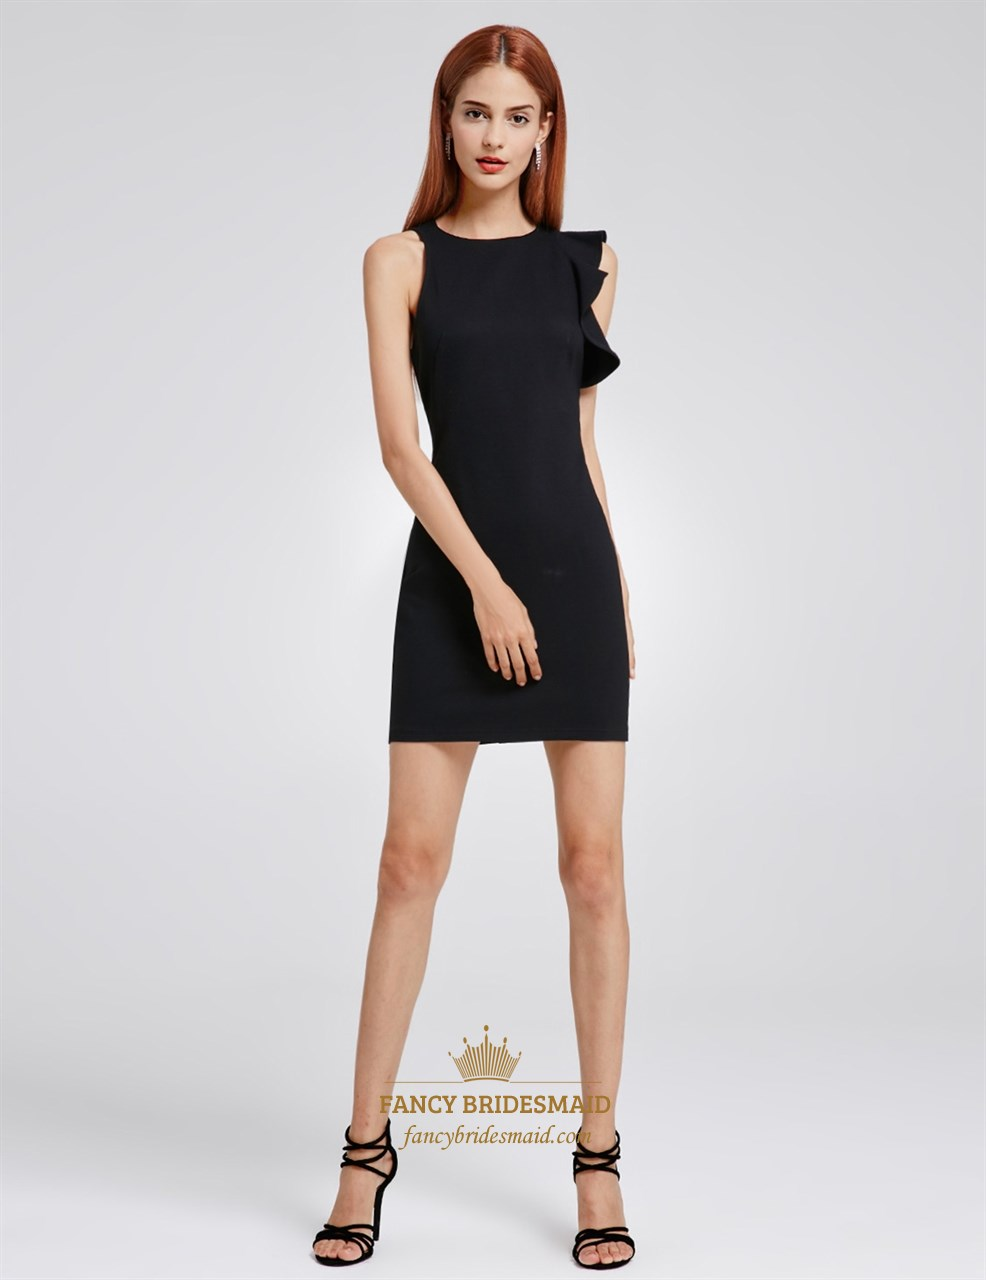 Asymmetrical Sleeveless Black Short Sheath Closed Back Cocktail Dress | Fancy Bridesmaid Dresses